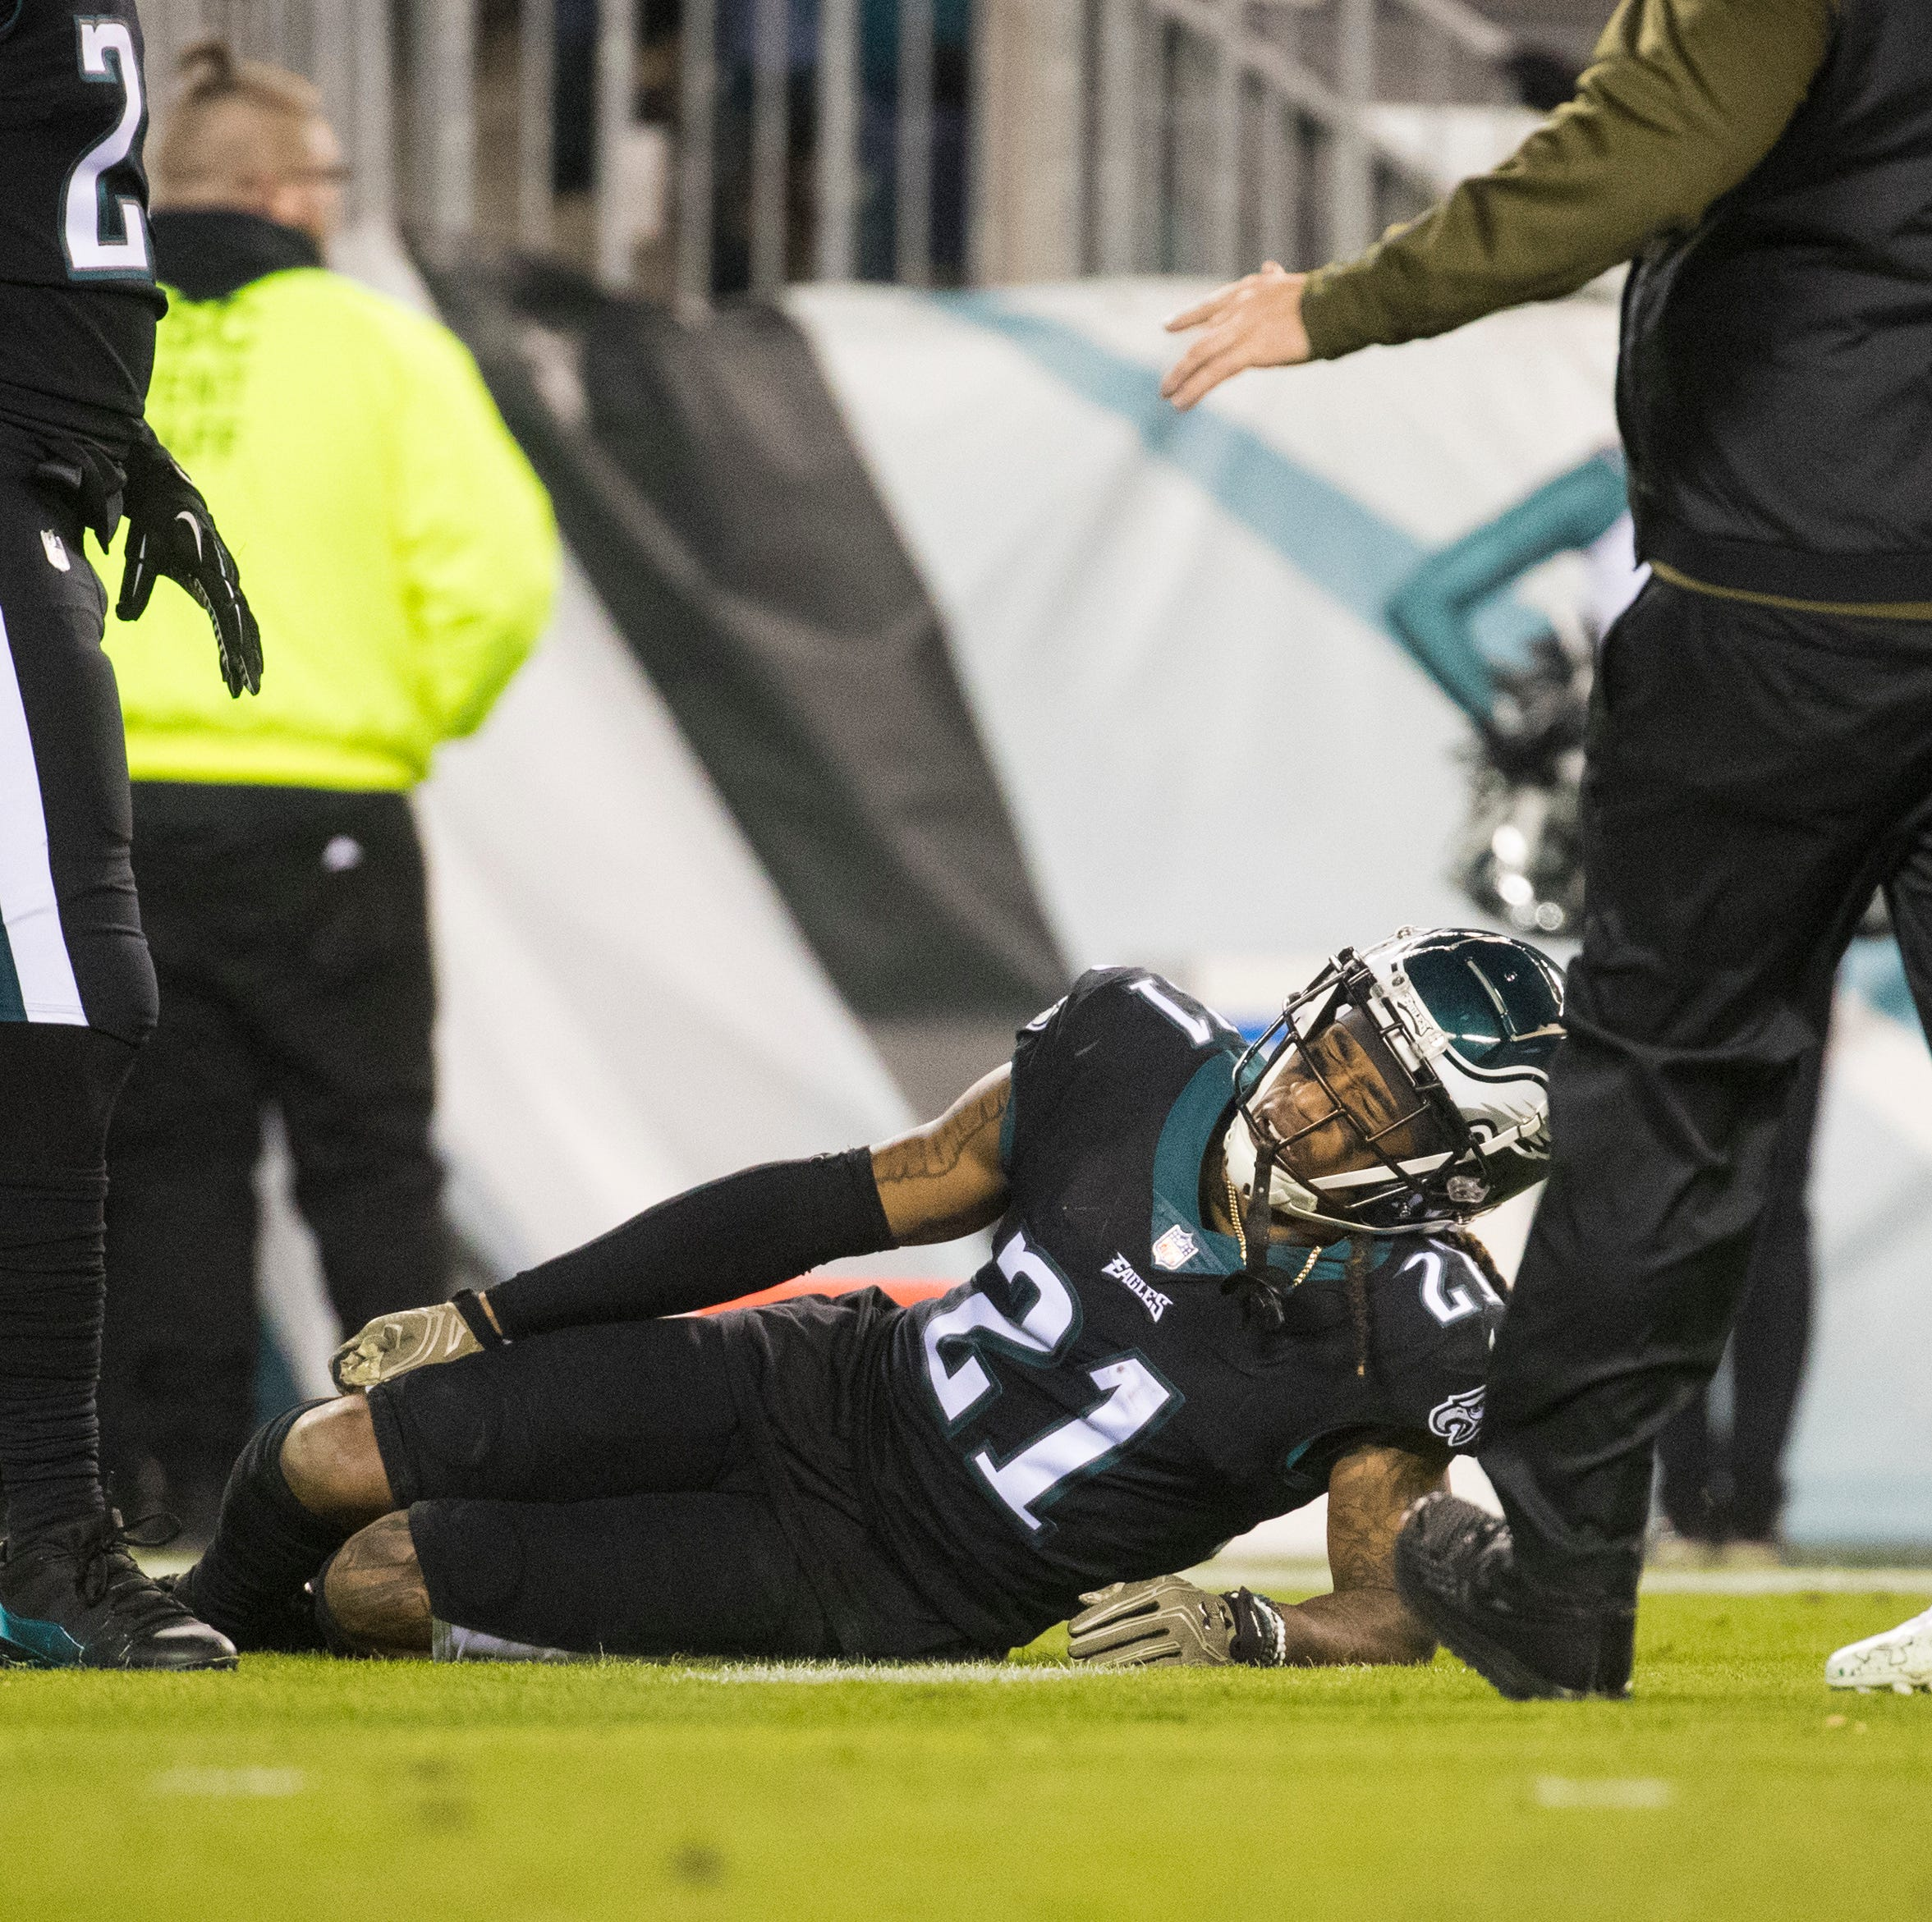 Eagles' Ronald Darby tears ACL, out for the season, as playoff hopes fade